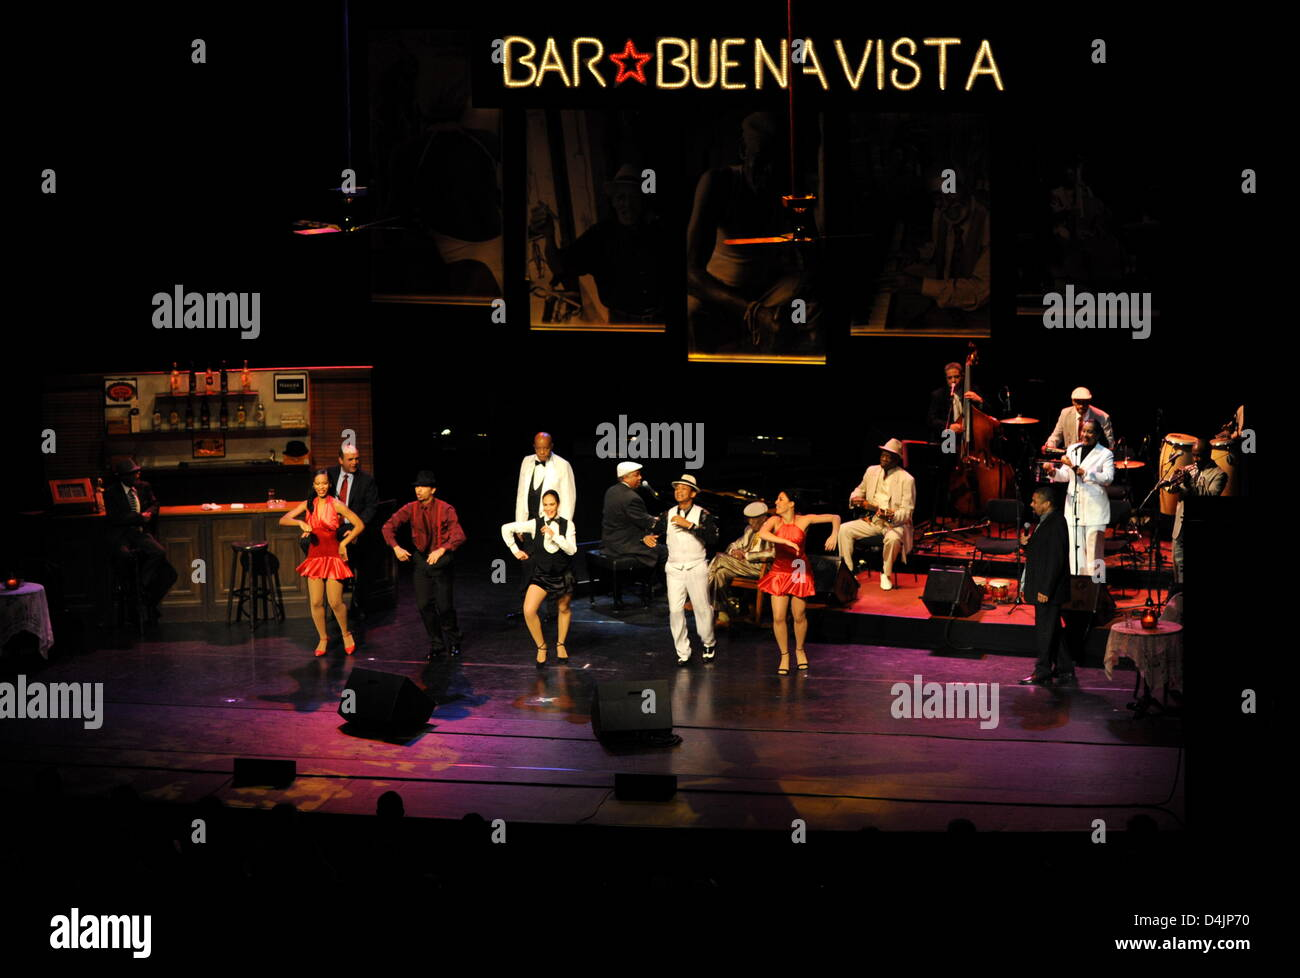 Dancers and musicians perform at the music show ?The Bar at Buena Vista? at Prinzregententheater in Munich, Germany, - Stock Image